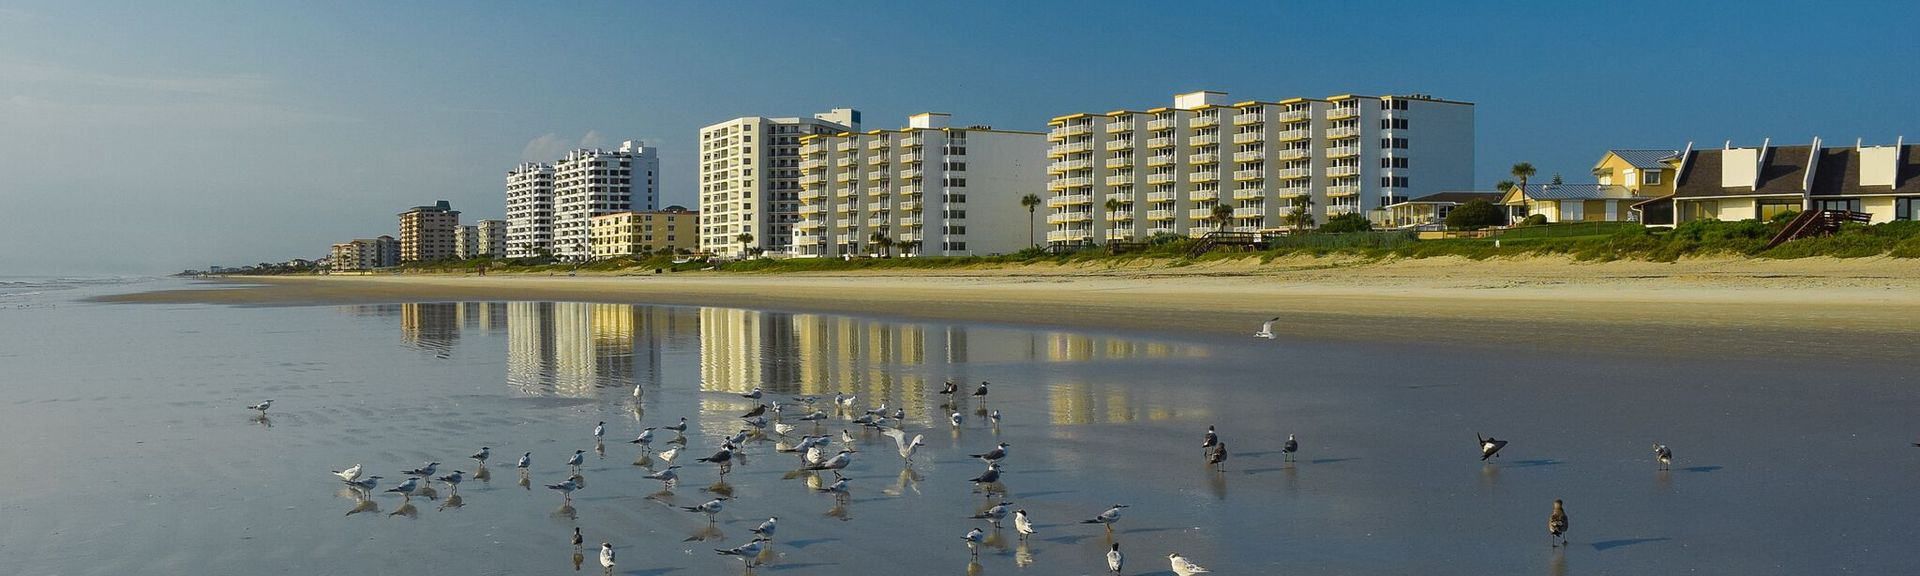 New Smyrna Beach, Florida, United States of America